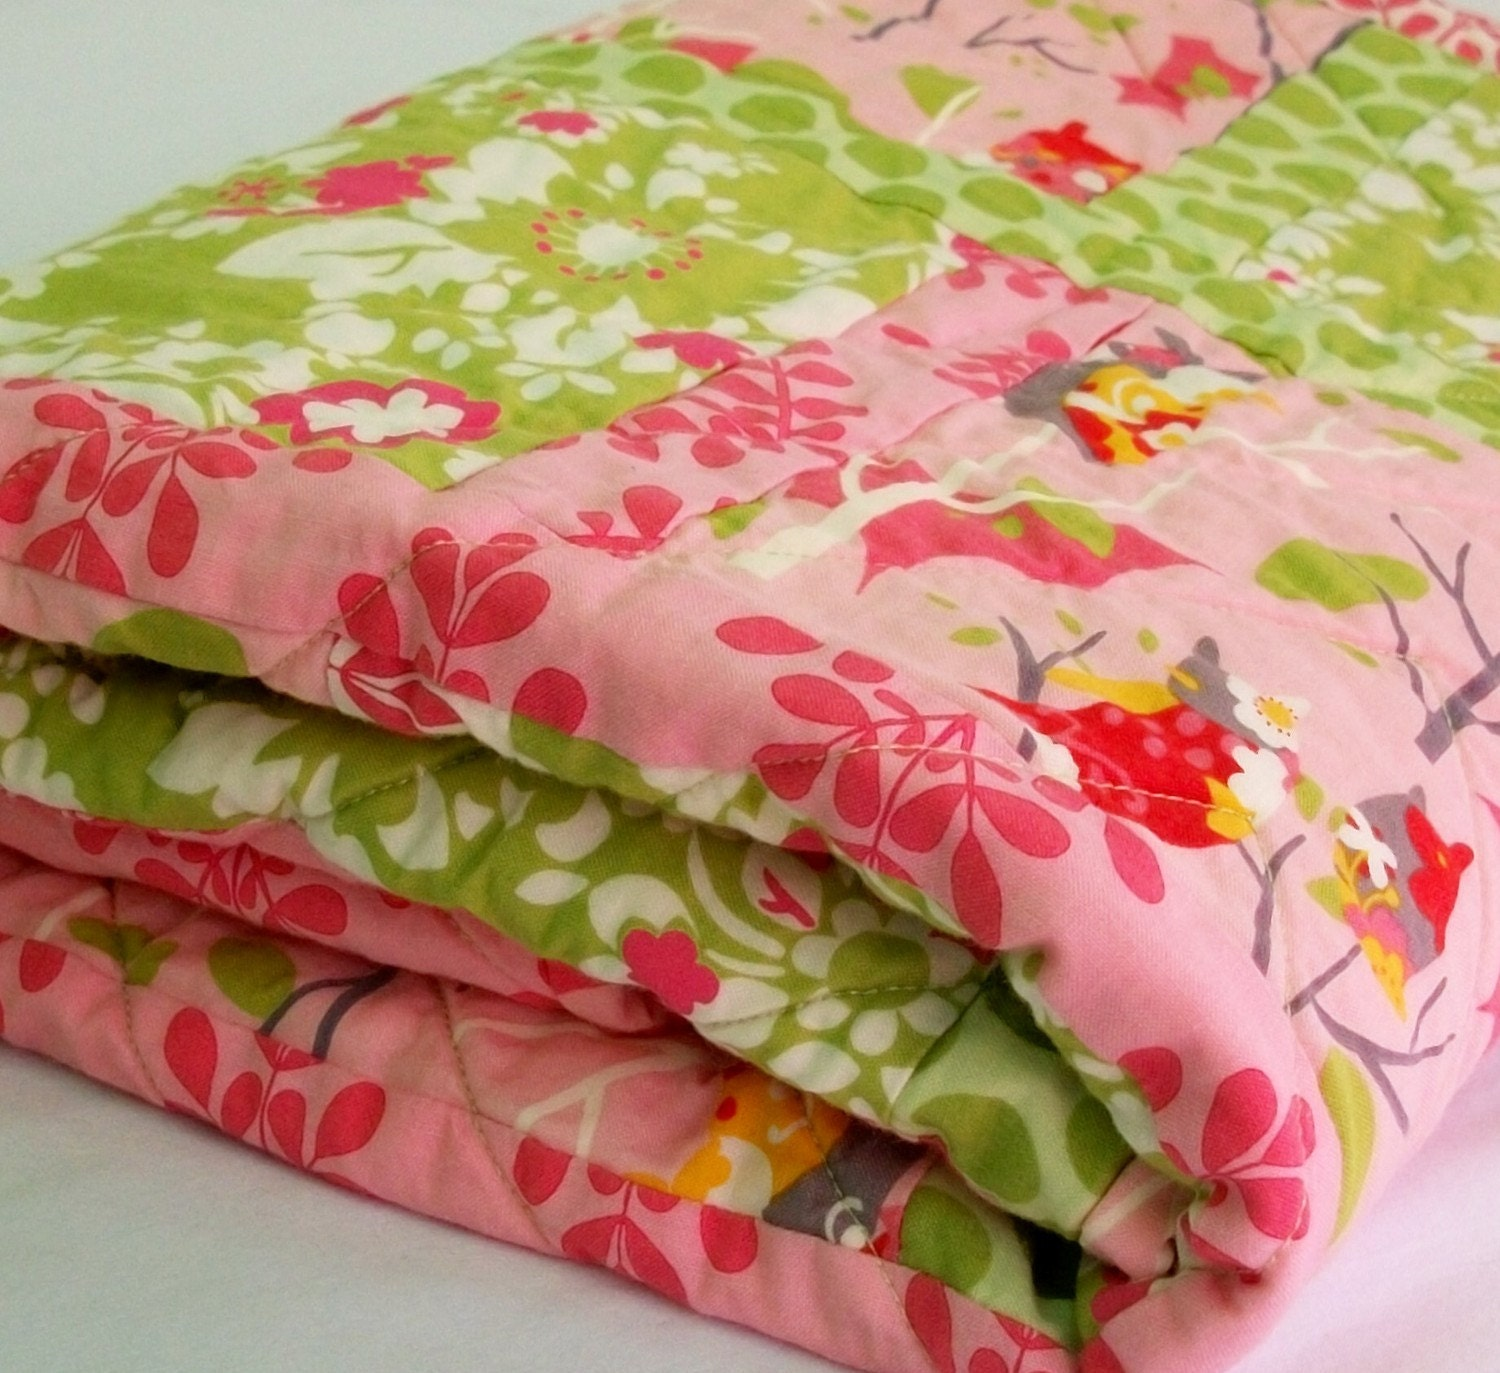 In the Pink Owl Handmade Patchwork Baby Quilt